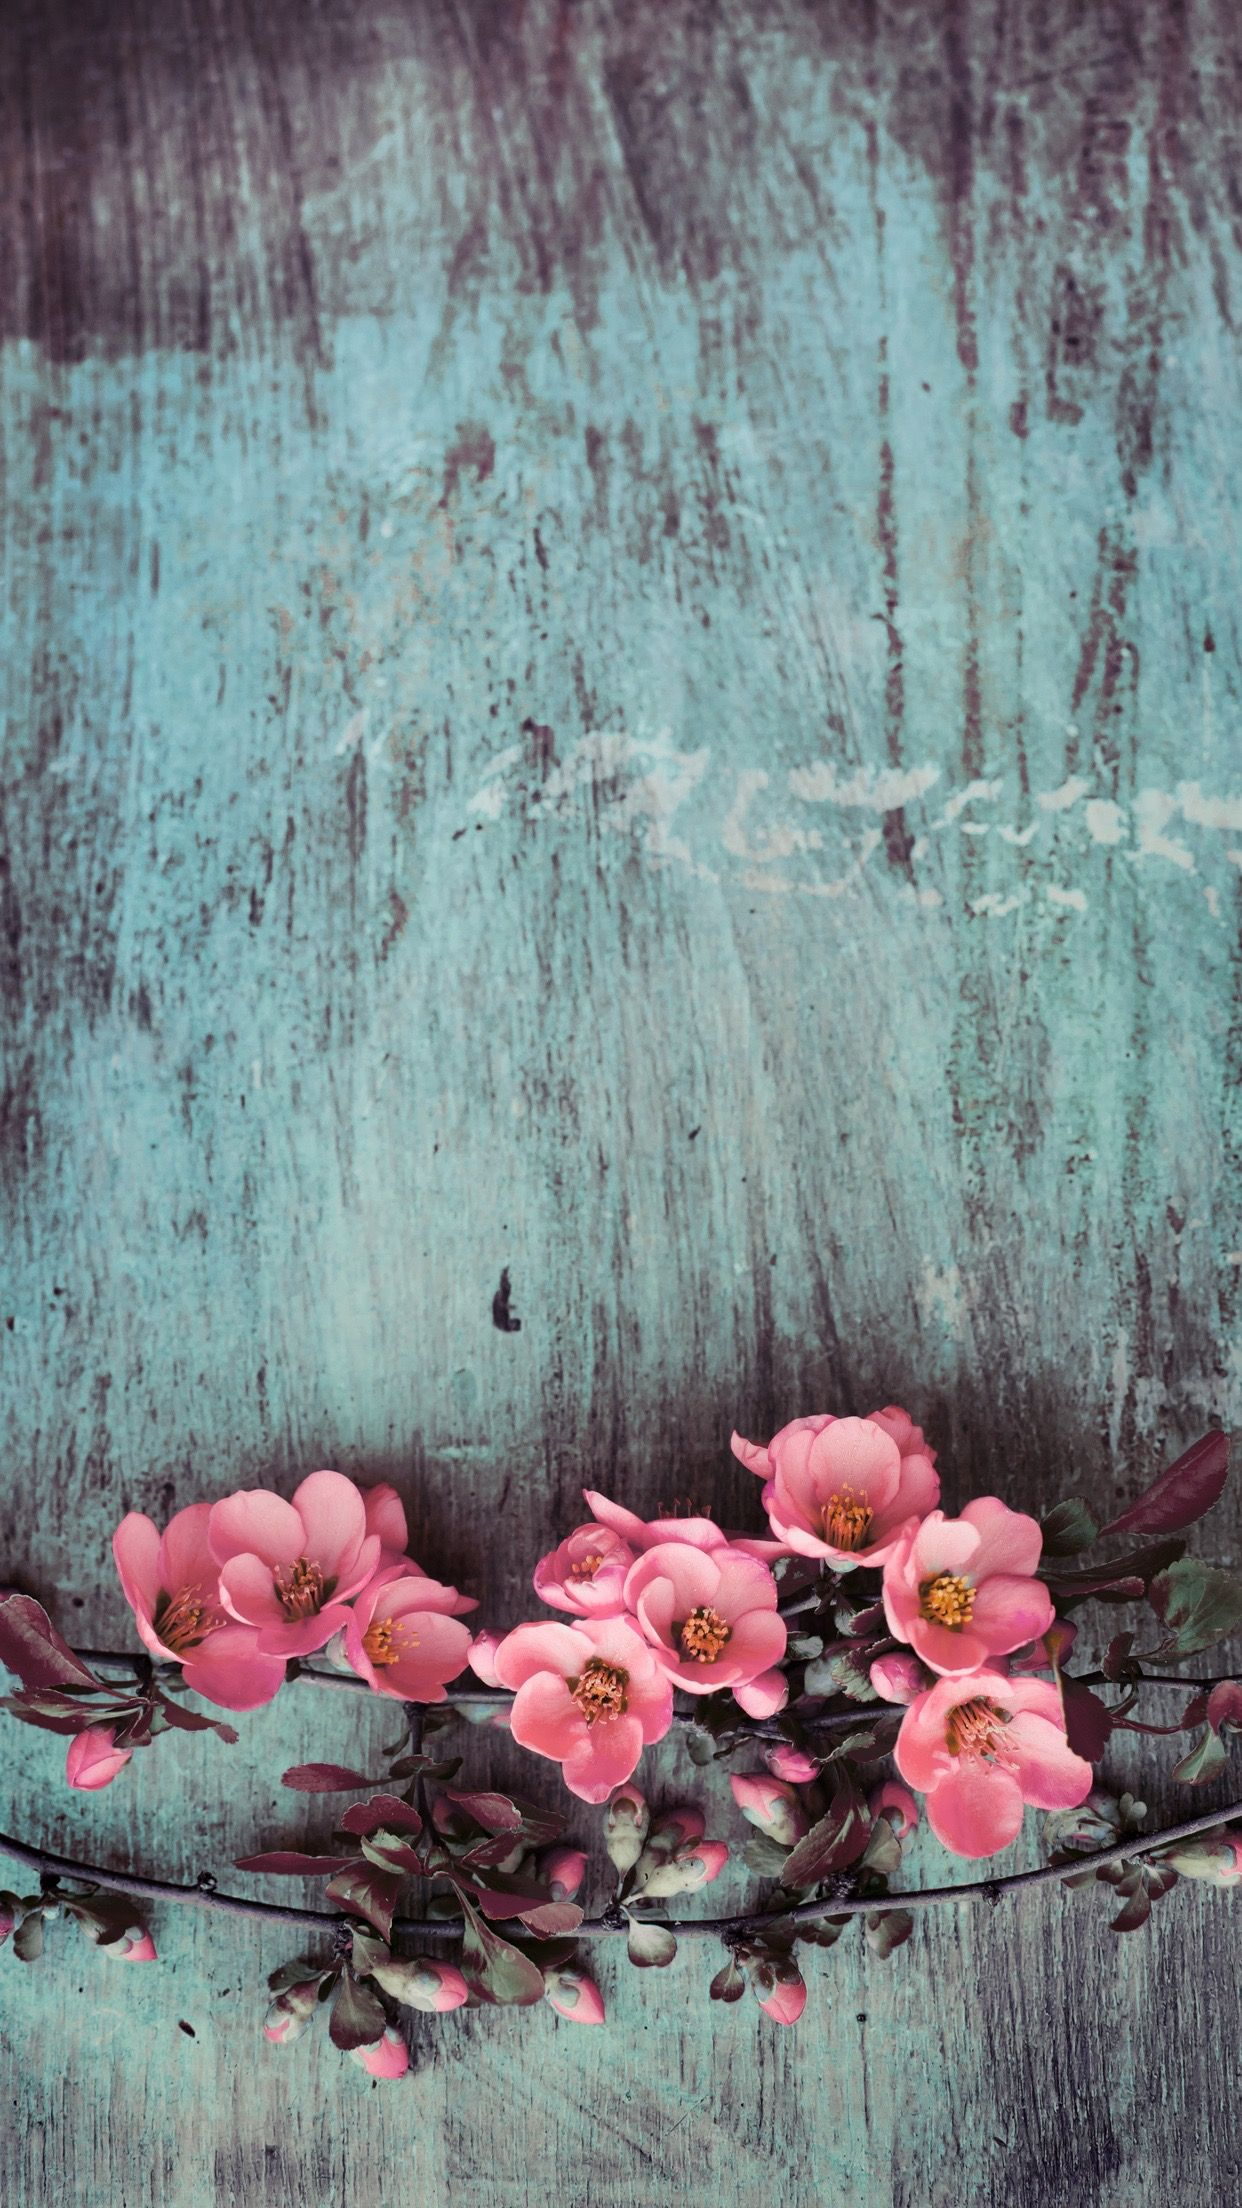 Pin By Rylee Clifton On Iphone Nature Iphone Wallpaper Flower Phone Wallpaper Android Phone